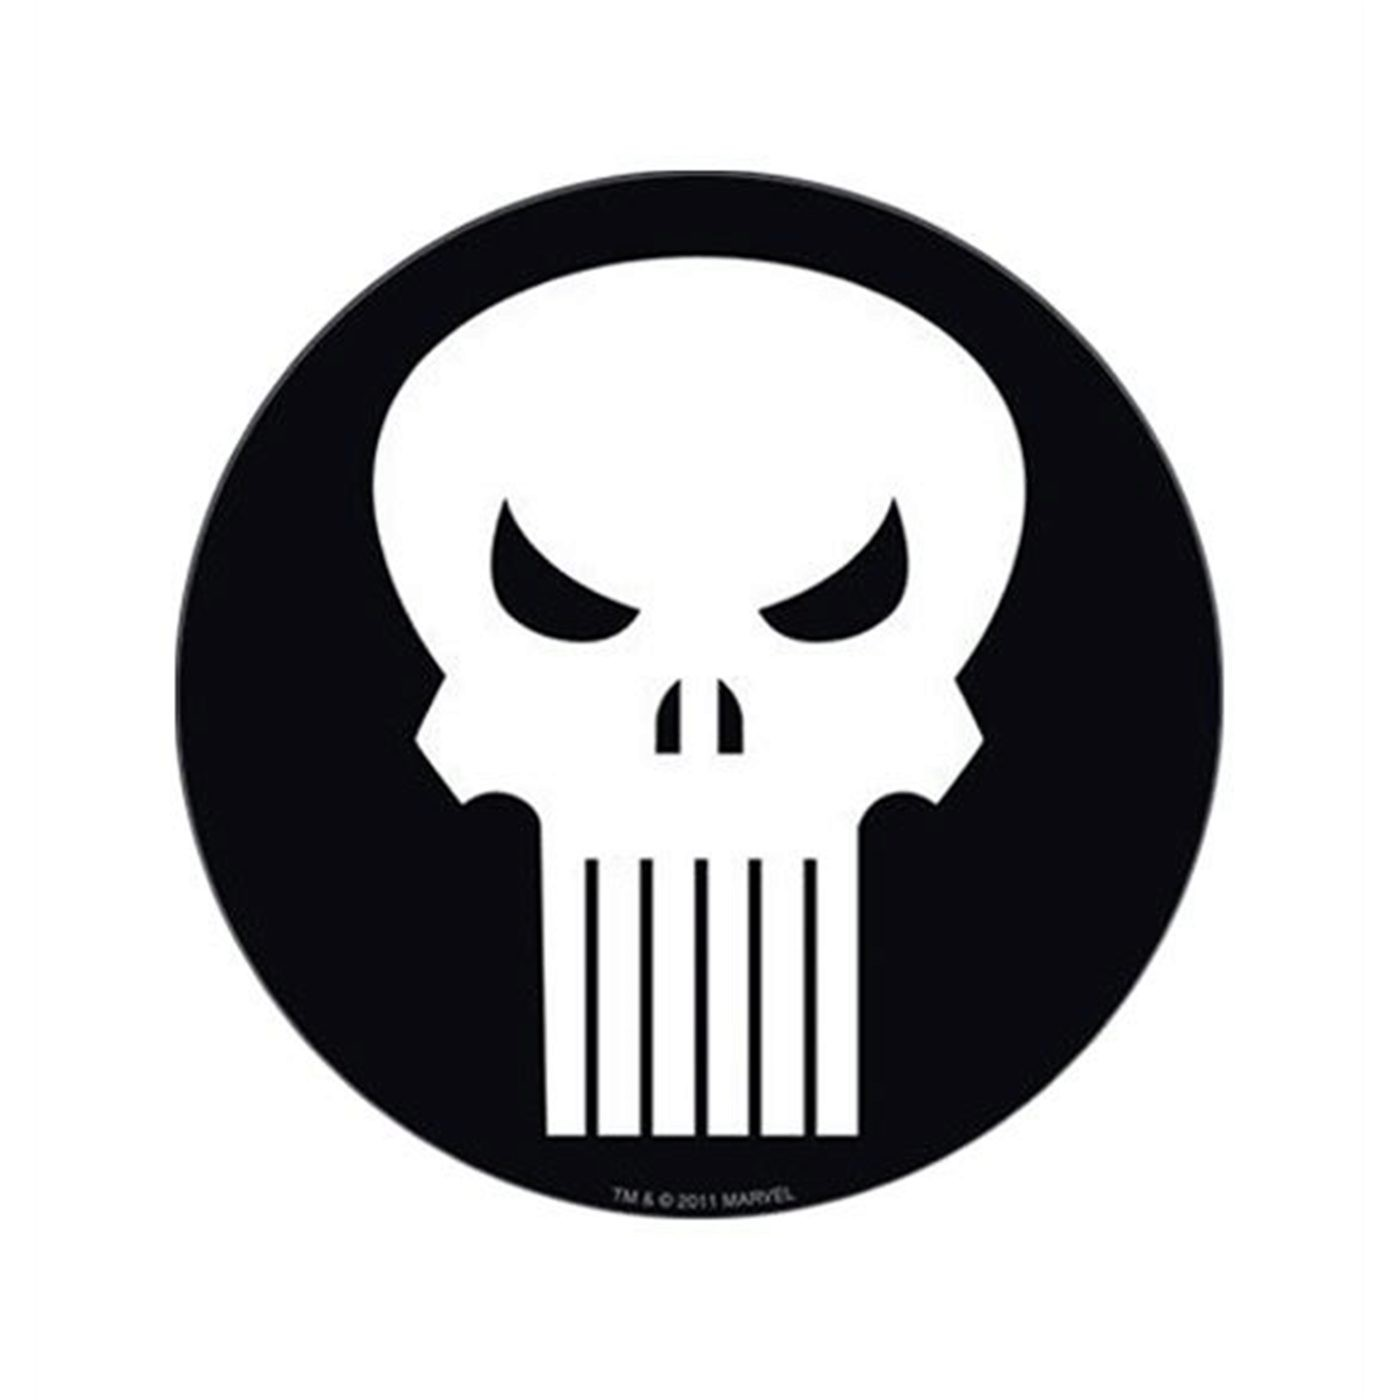 Punisher White Skull Symbol Sticker